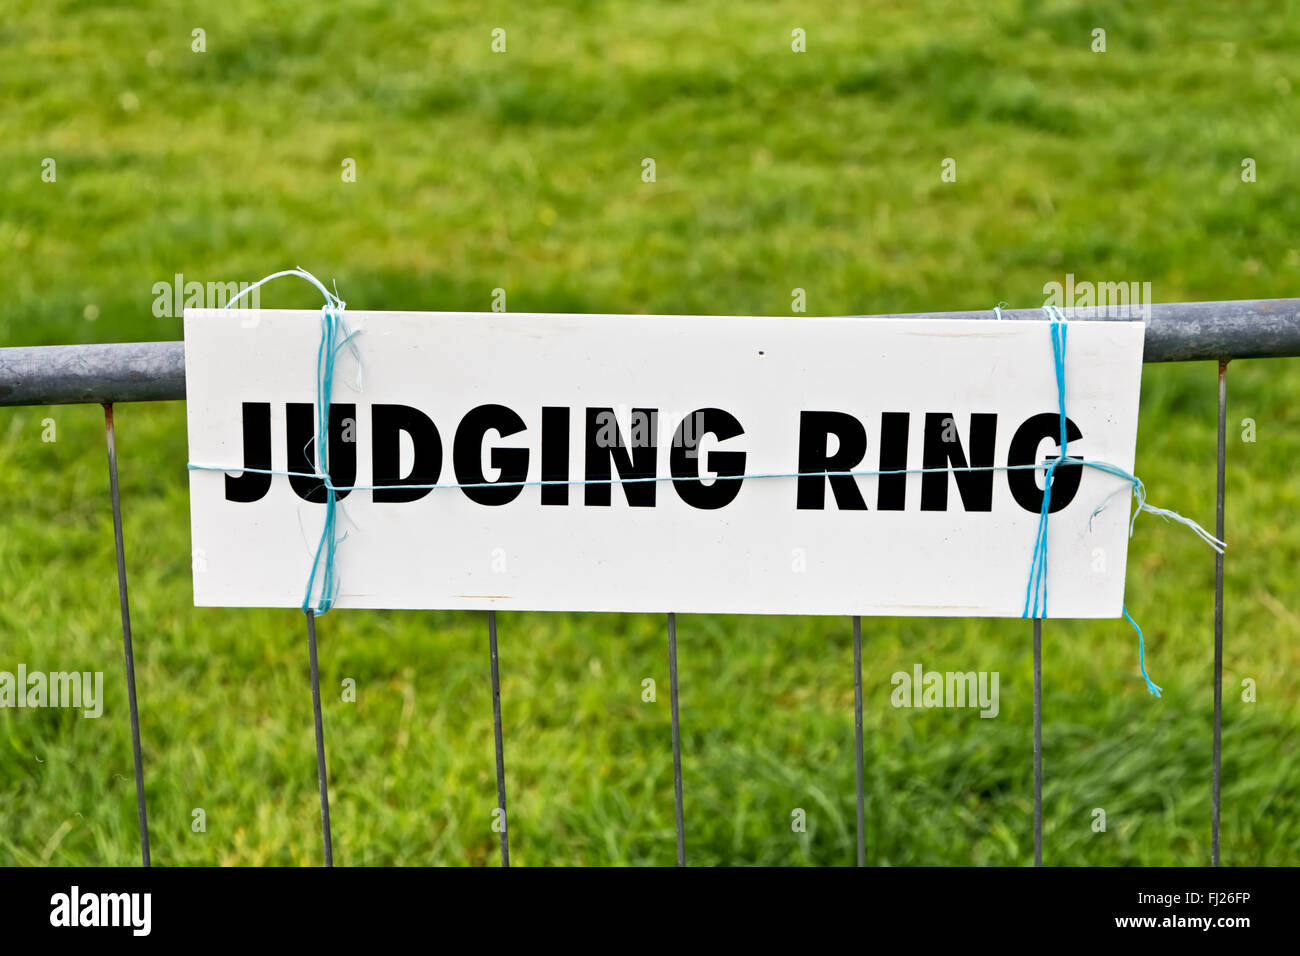 An animal judging ring sign at the 2015 Gillingham & Shaftesbury Agricultural Show in Dorset, United Kingdom. - Stock Image